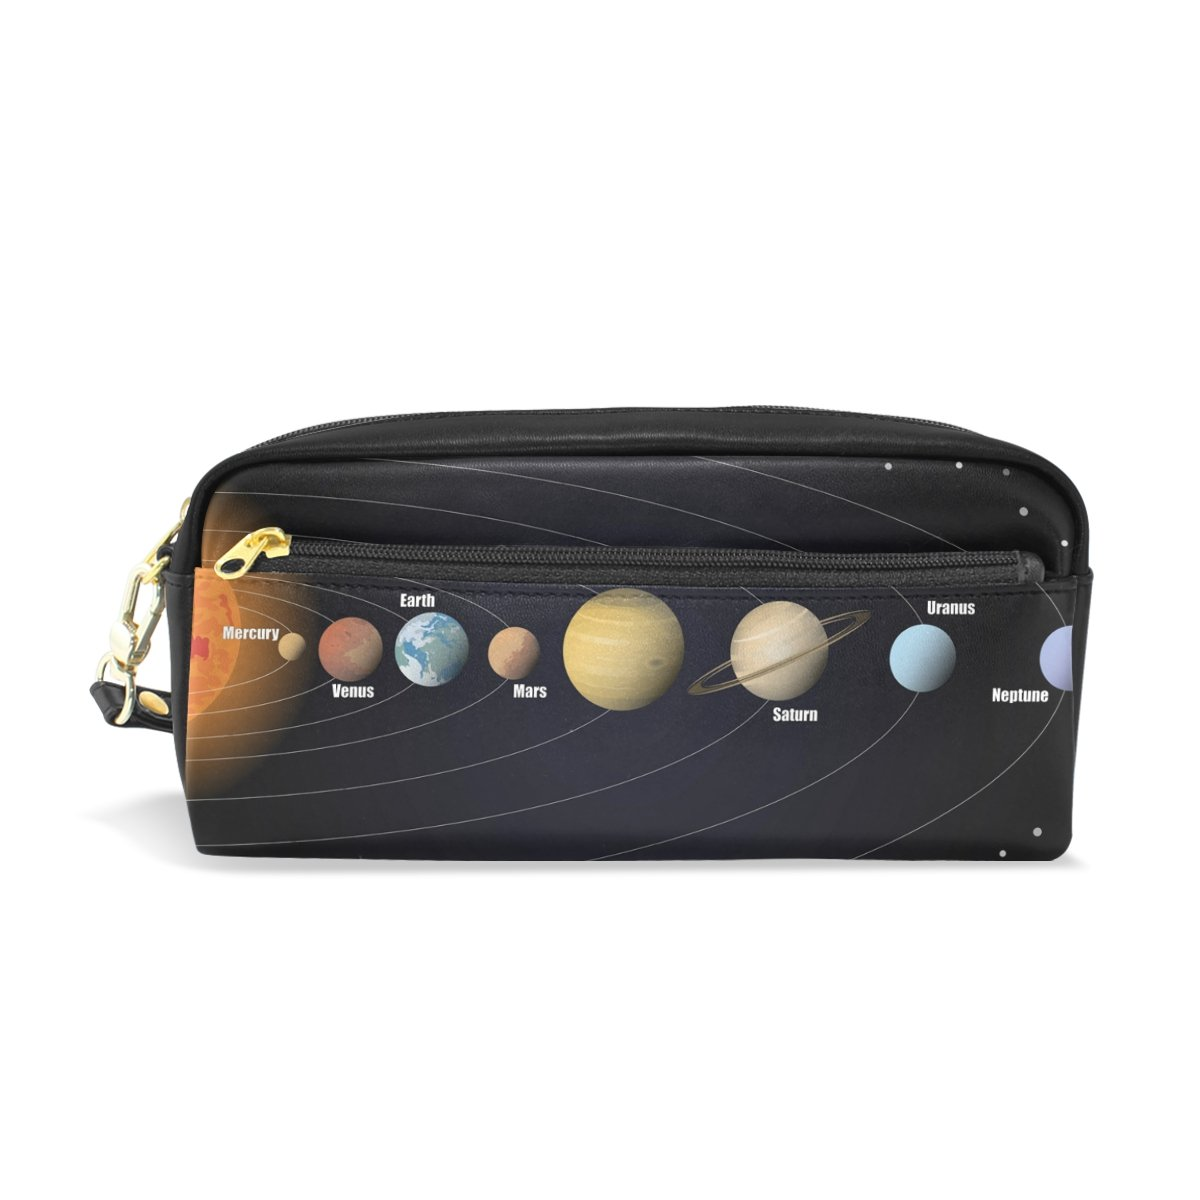 LORVIES Diagram Of Solar System Portable PU Leather Pencil Case School Pen Bags Stationary Pouch Case Large Capacity Makeup Cosmetic Bag